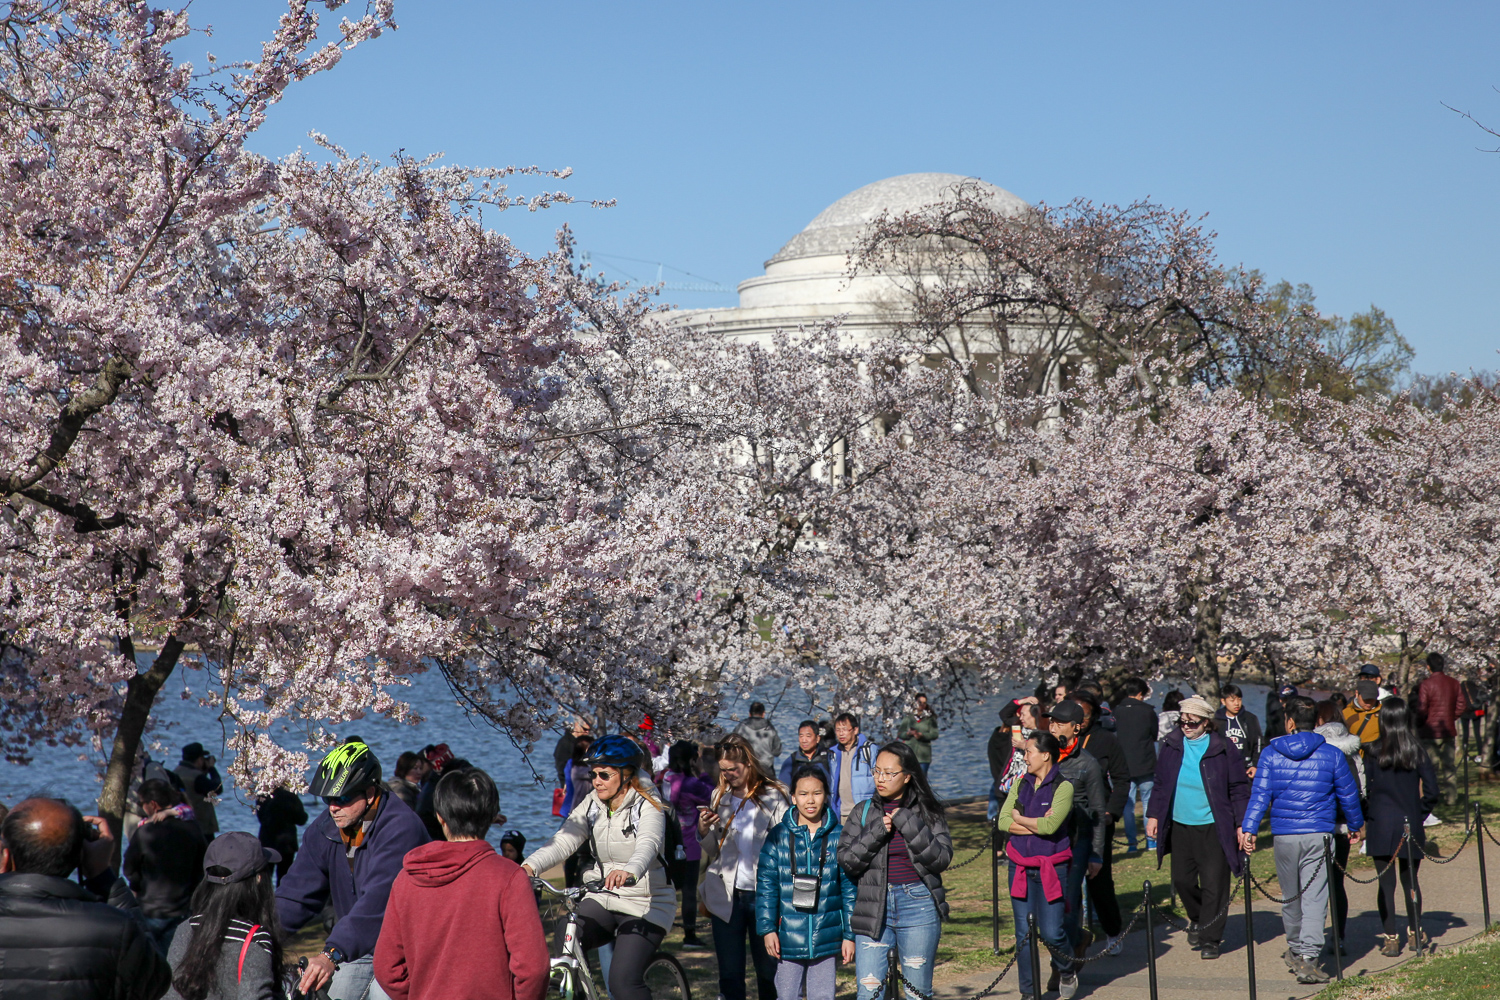 It's finally happening! After weeks of waiting and shifting predictions, peak bloom has arrived at the Tidal Basin. If you're willing to fight your way through the tourists, it's a gorgeous sight. However, the blooms may be at risk if snow comes this weekend, so hurry to the Tidal Basin and get your flower fix. (Amanda Andrade-Rhoades/DC Refined)